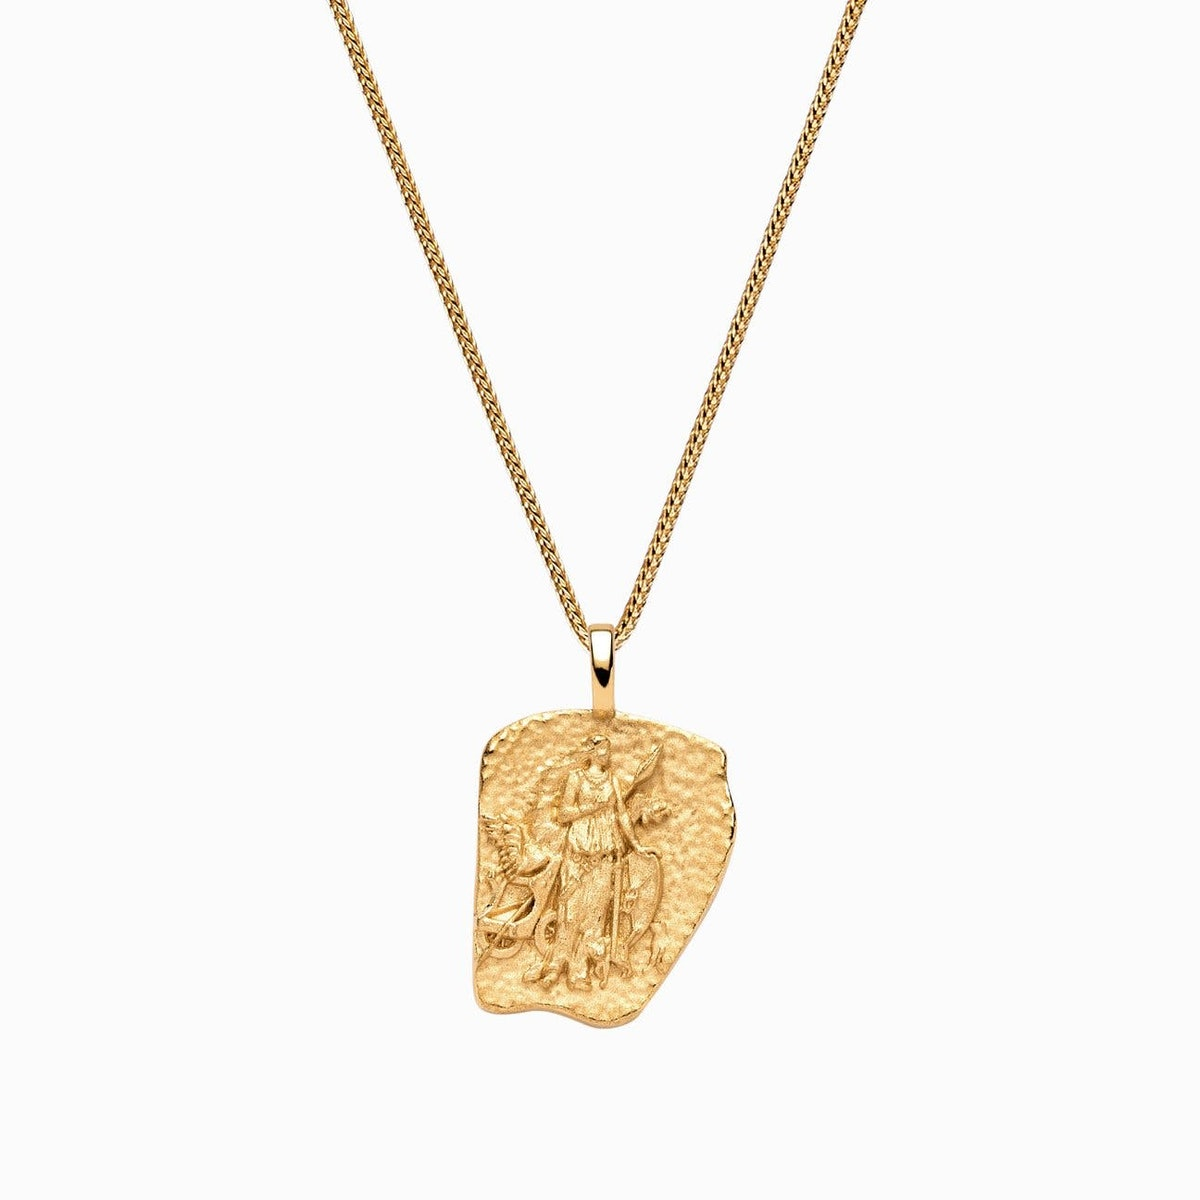 Freya gold vermeil necklace from charitable brand Awe Inspired.